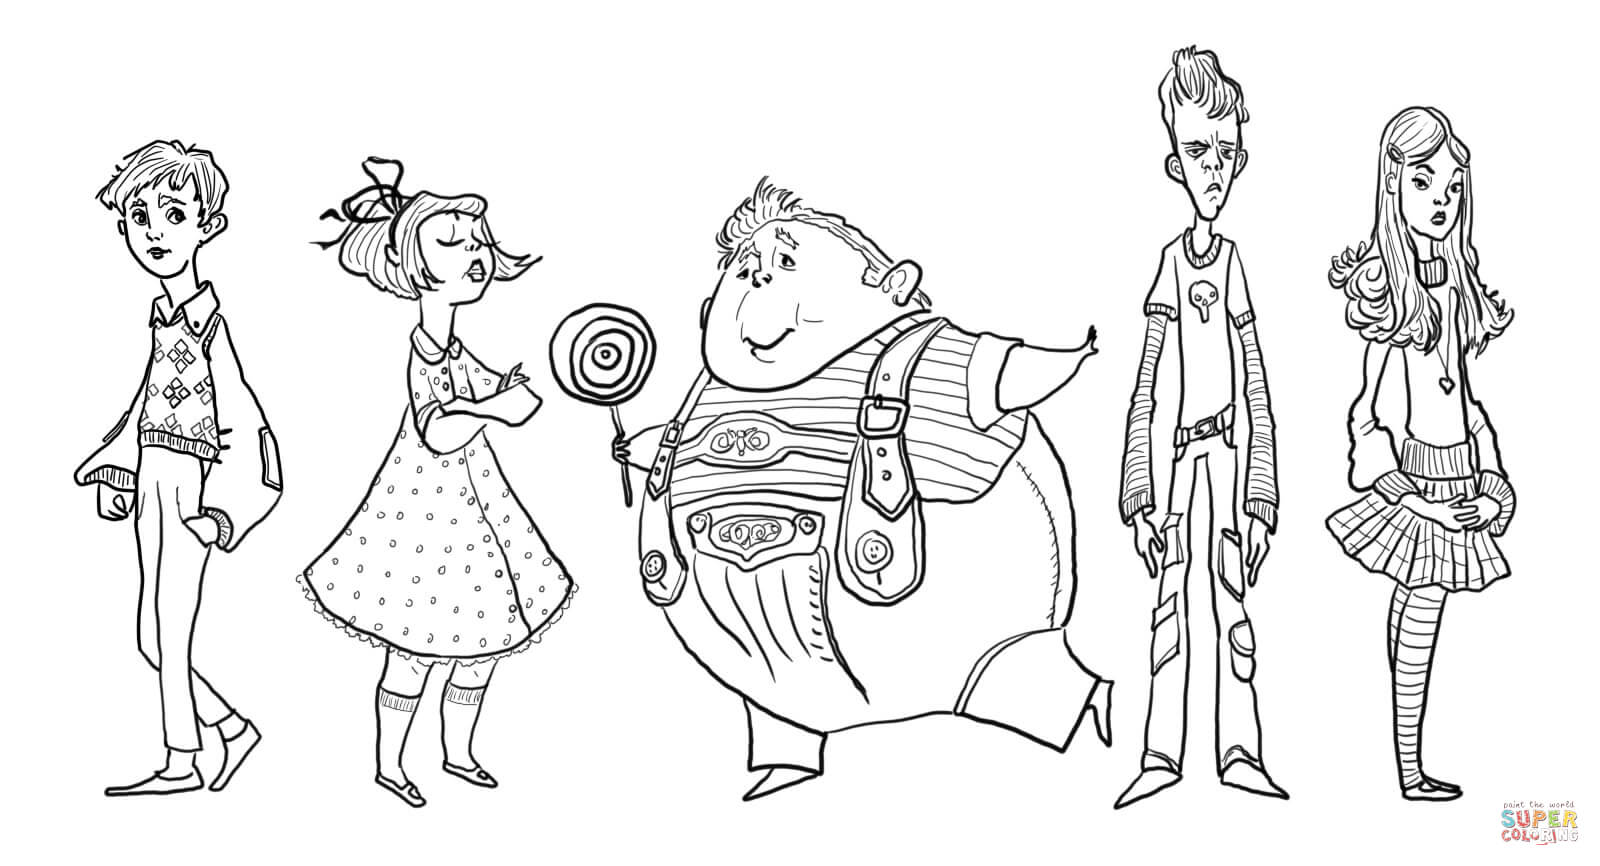 charlie and the chocolate factory coloring sheets kleurplaten charlie and the chocolate factory kleurplaat coloring sheets the and charlie chocolate factory